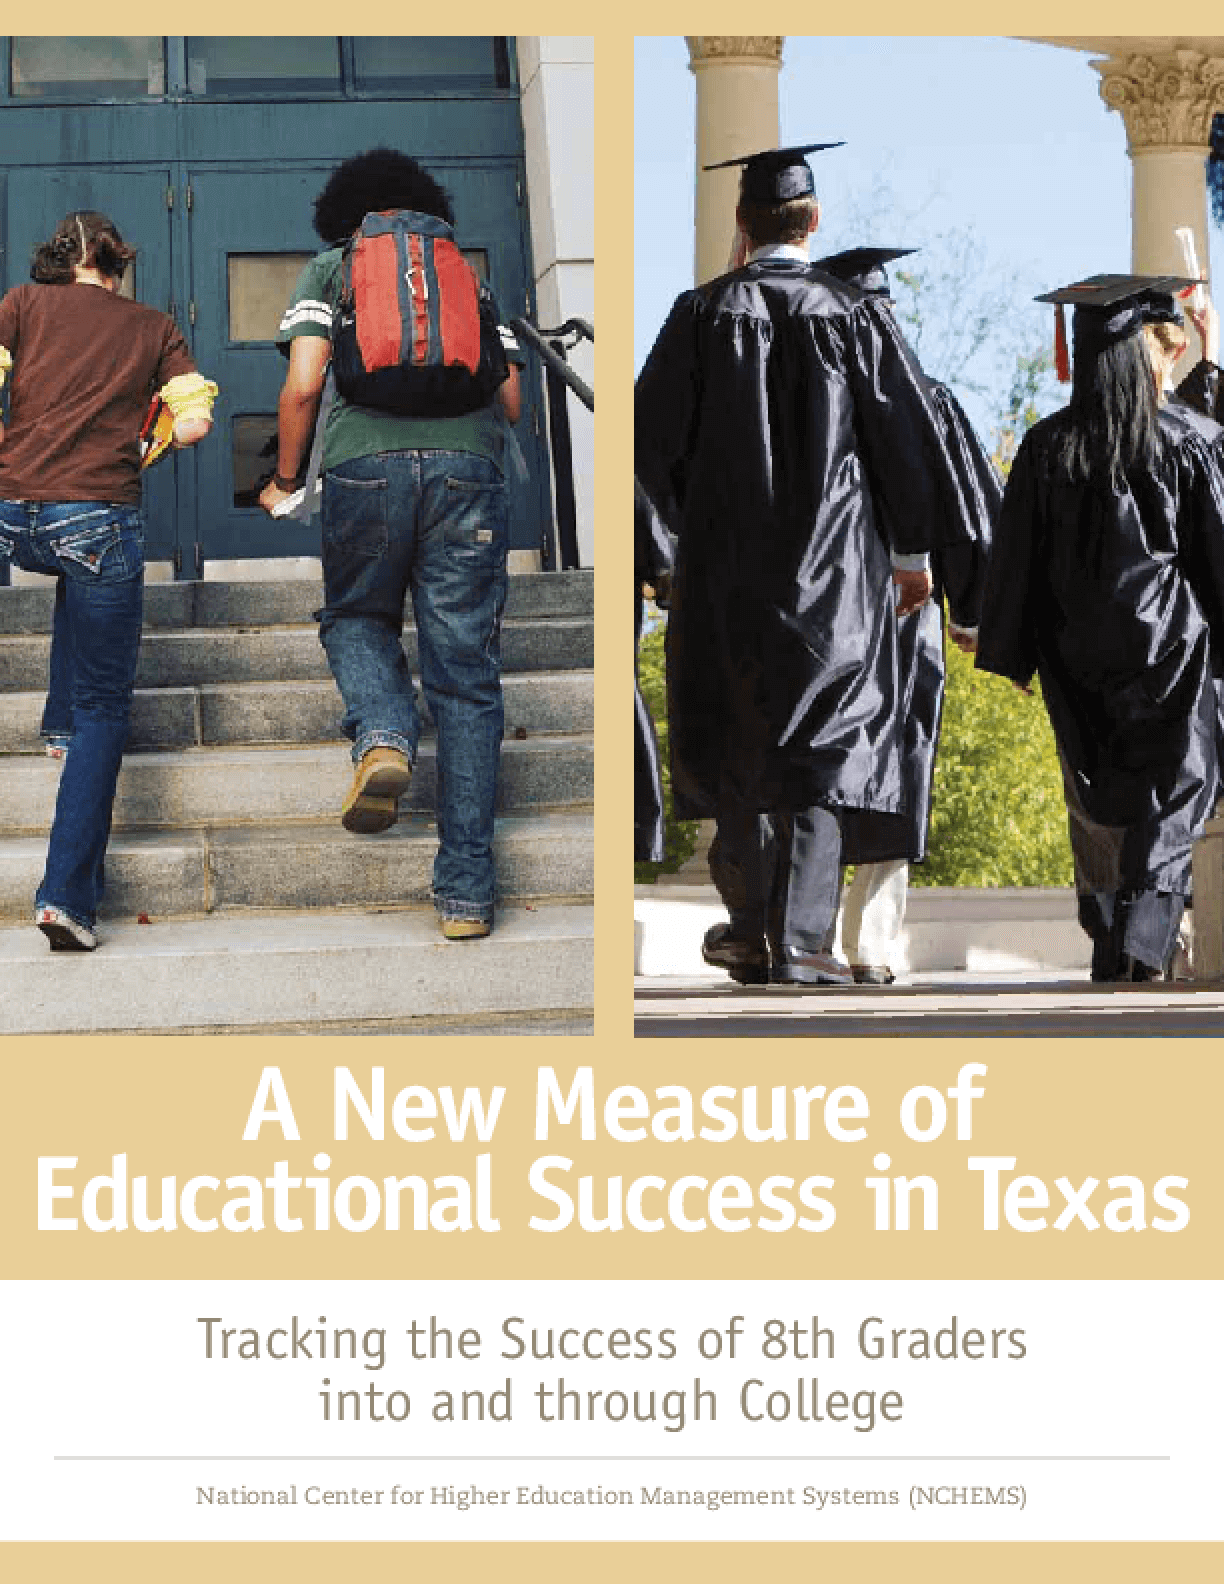 A New Measure of Educational Success in Texas